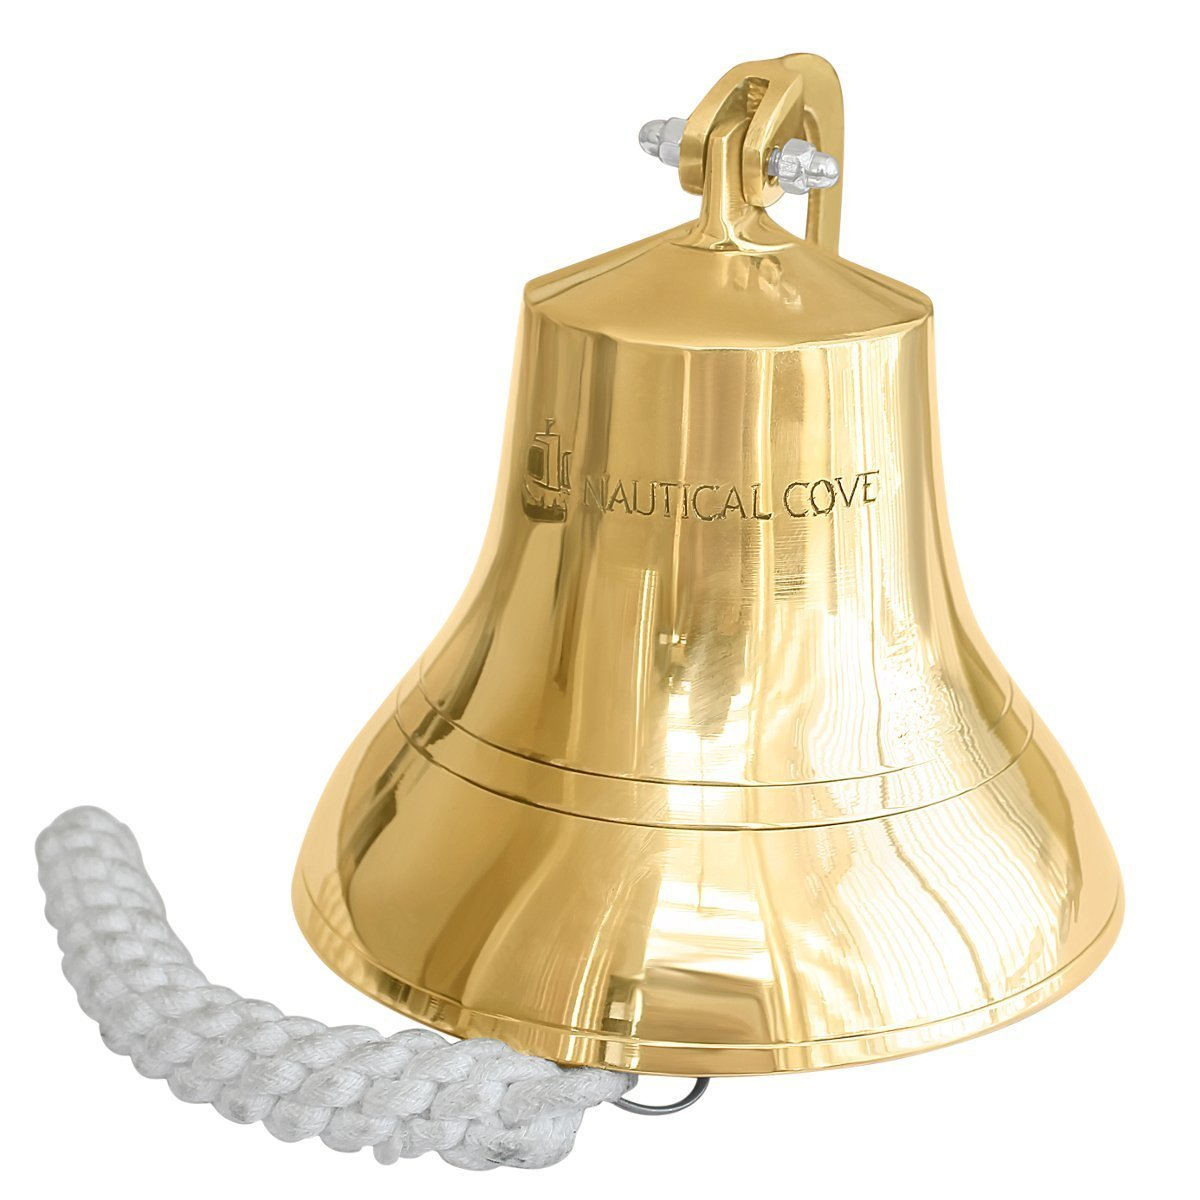 Nautical Vintage Wall Hanging Door Bell Vintage Marine Brass Ship Calling Bell Delicacies Loved By All Antiques